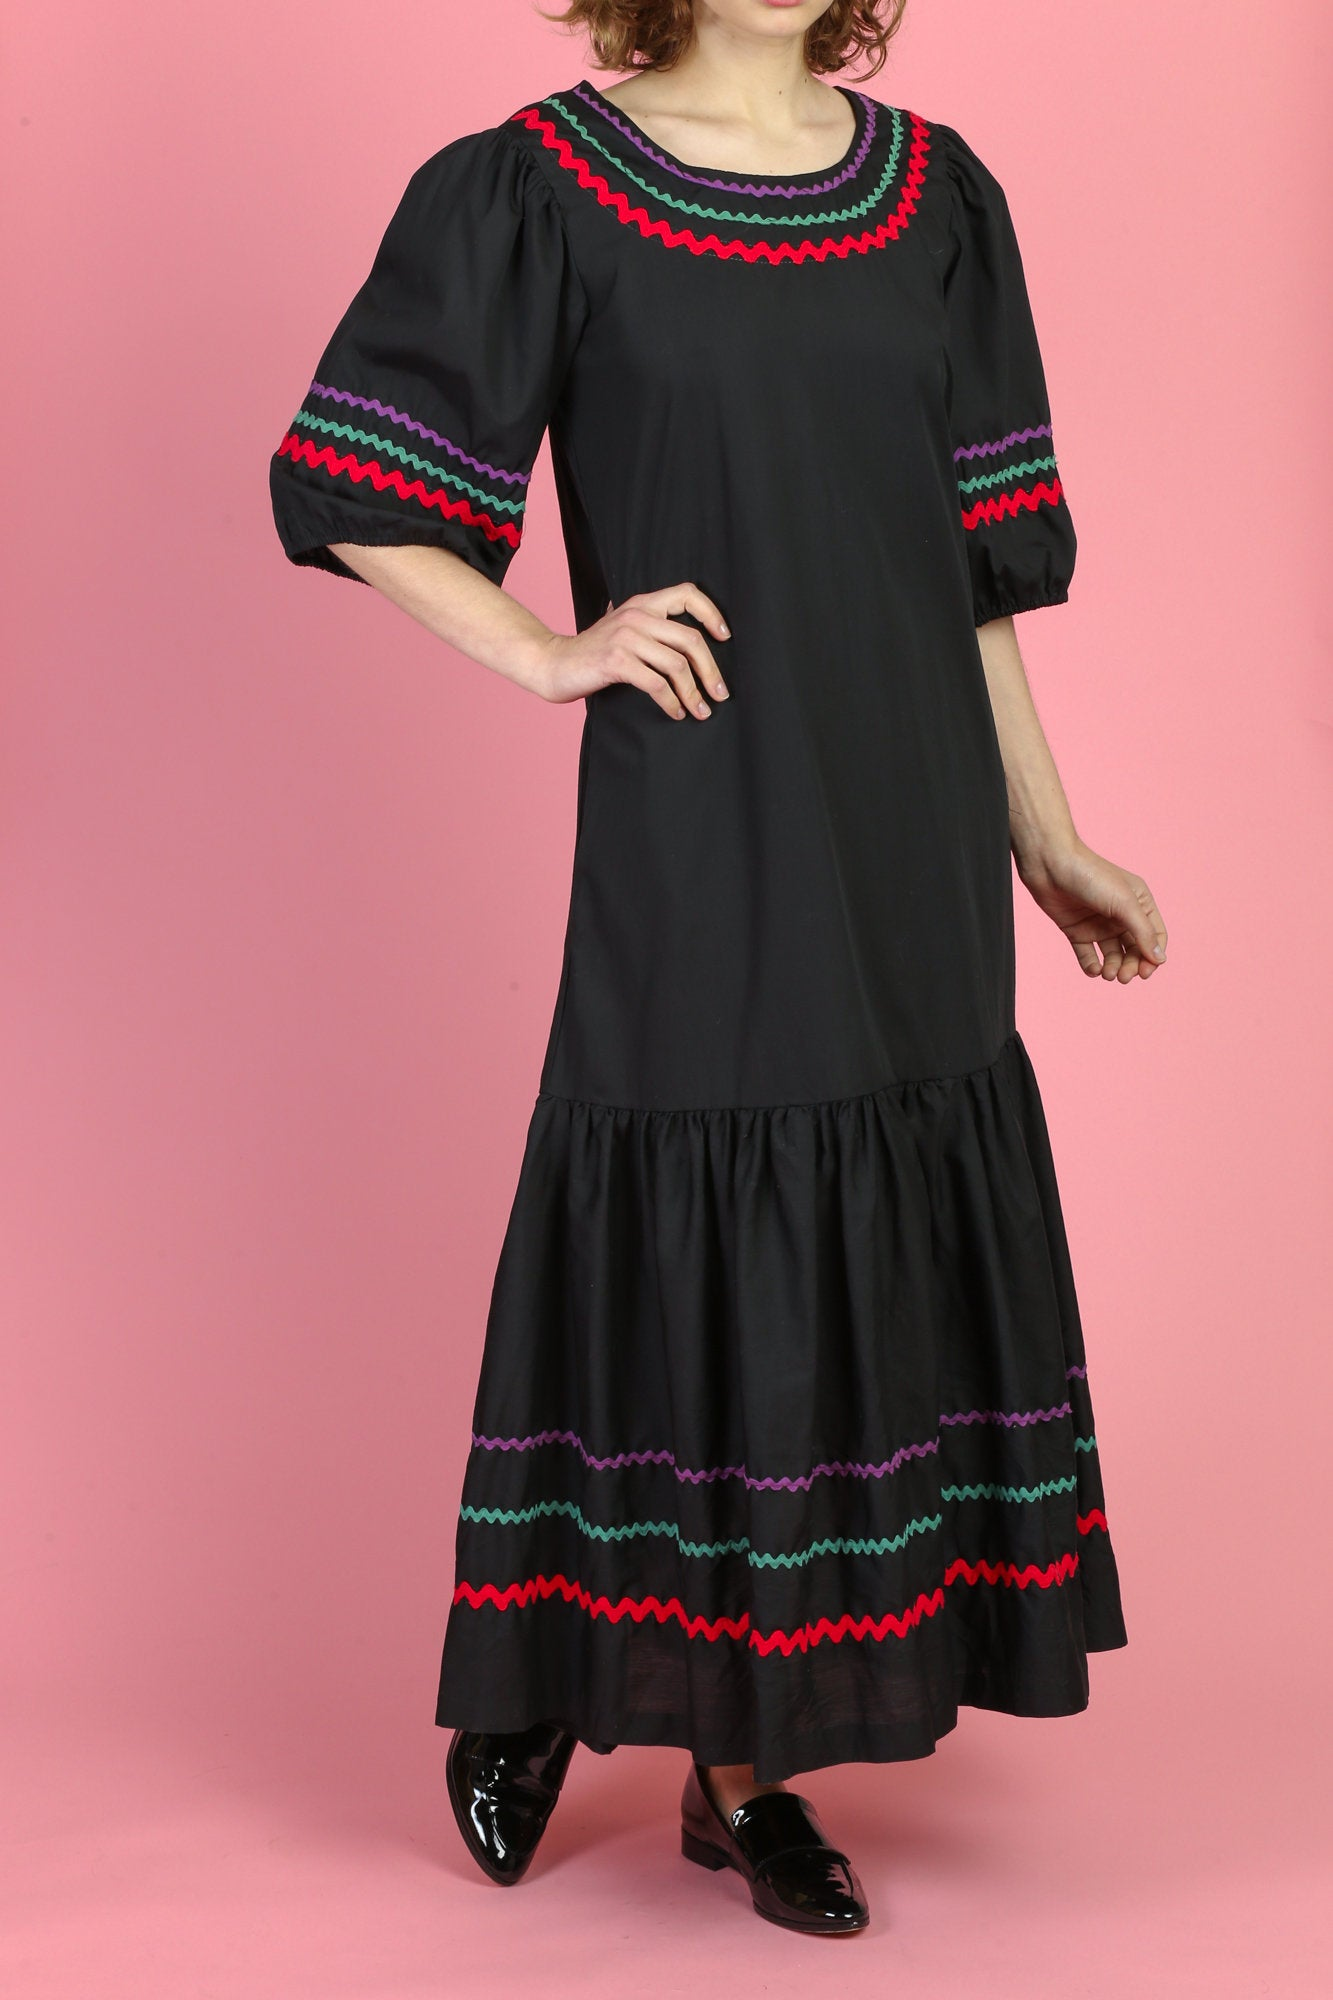 Vintage Grunge Mexican Ric Rac Trim Maxi Dress - Medium